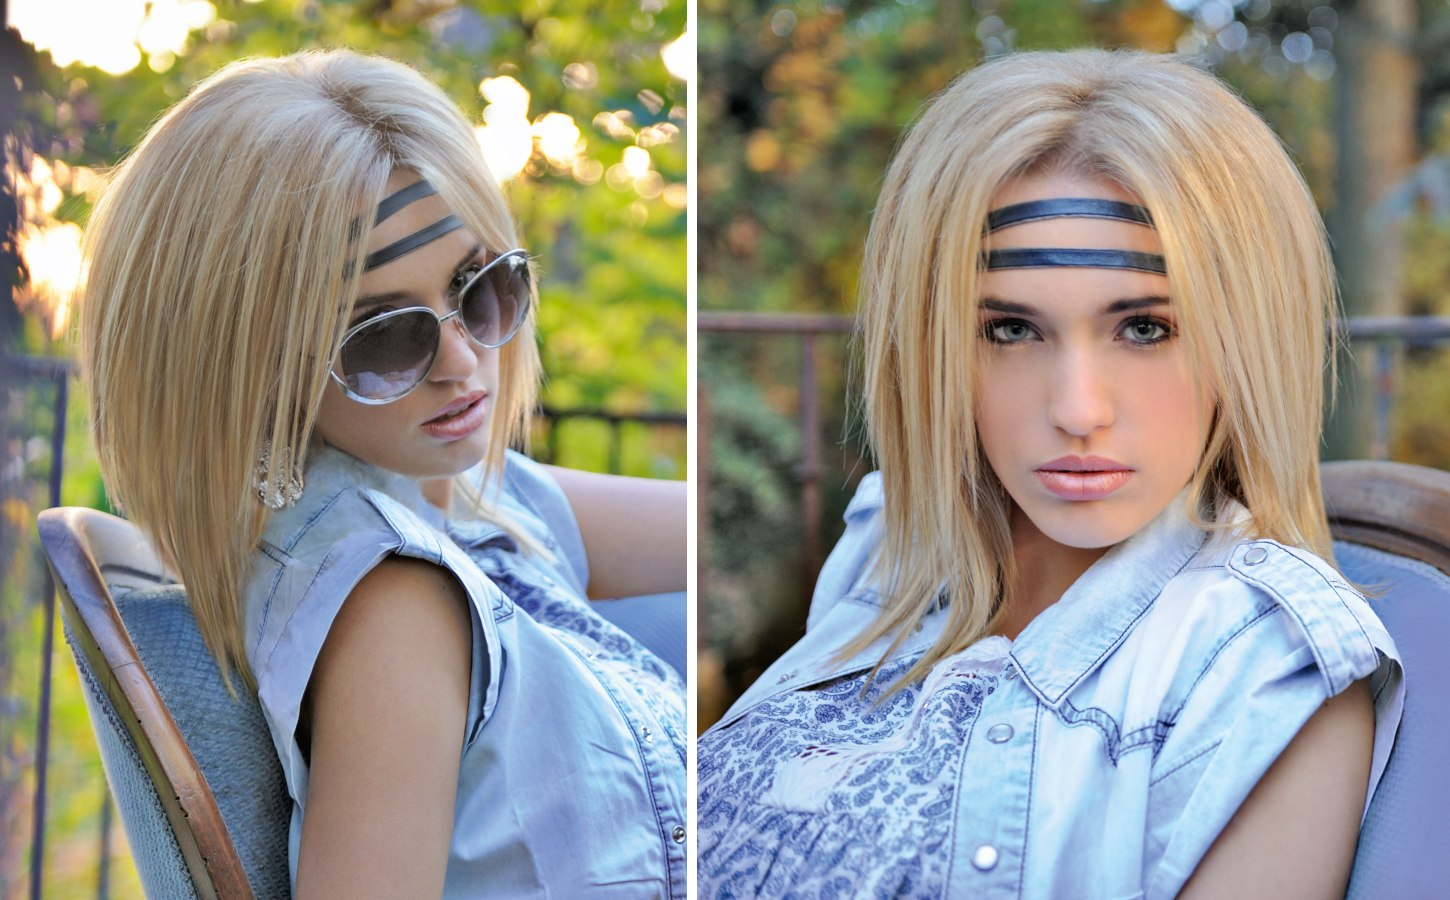 Long A Line Cut And A Fashionable Double Headband Made Of